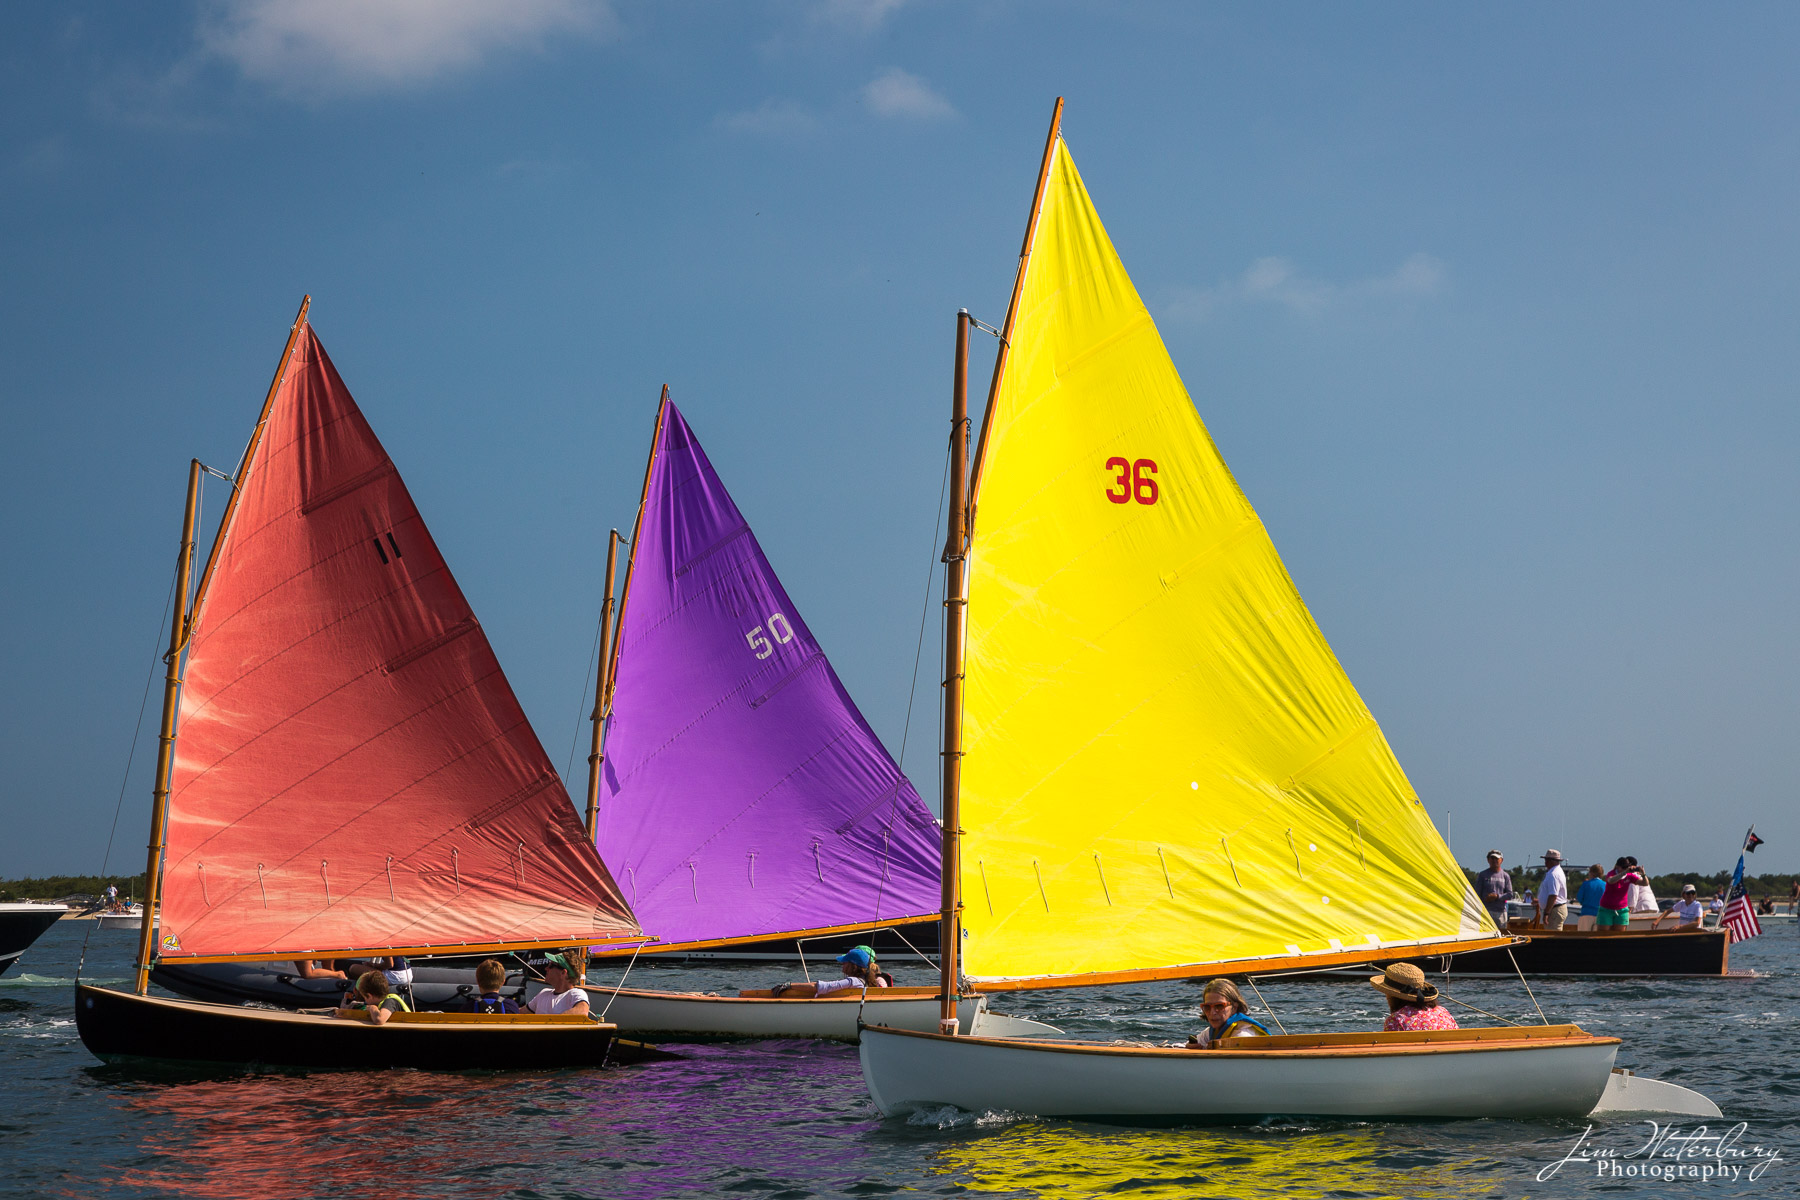 Members of the Nantucket Rainbow fleet, with their colorful sails, kick off the final day of sailing at the annual Nantucket...